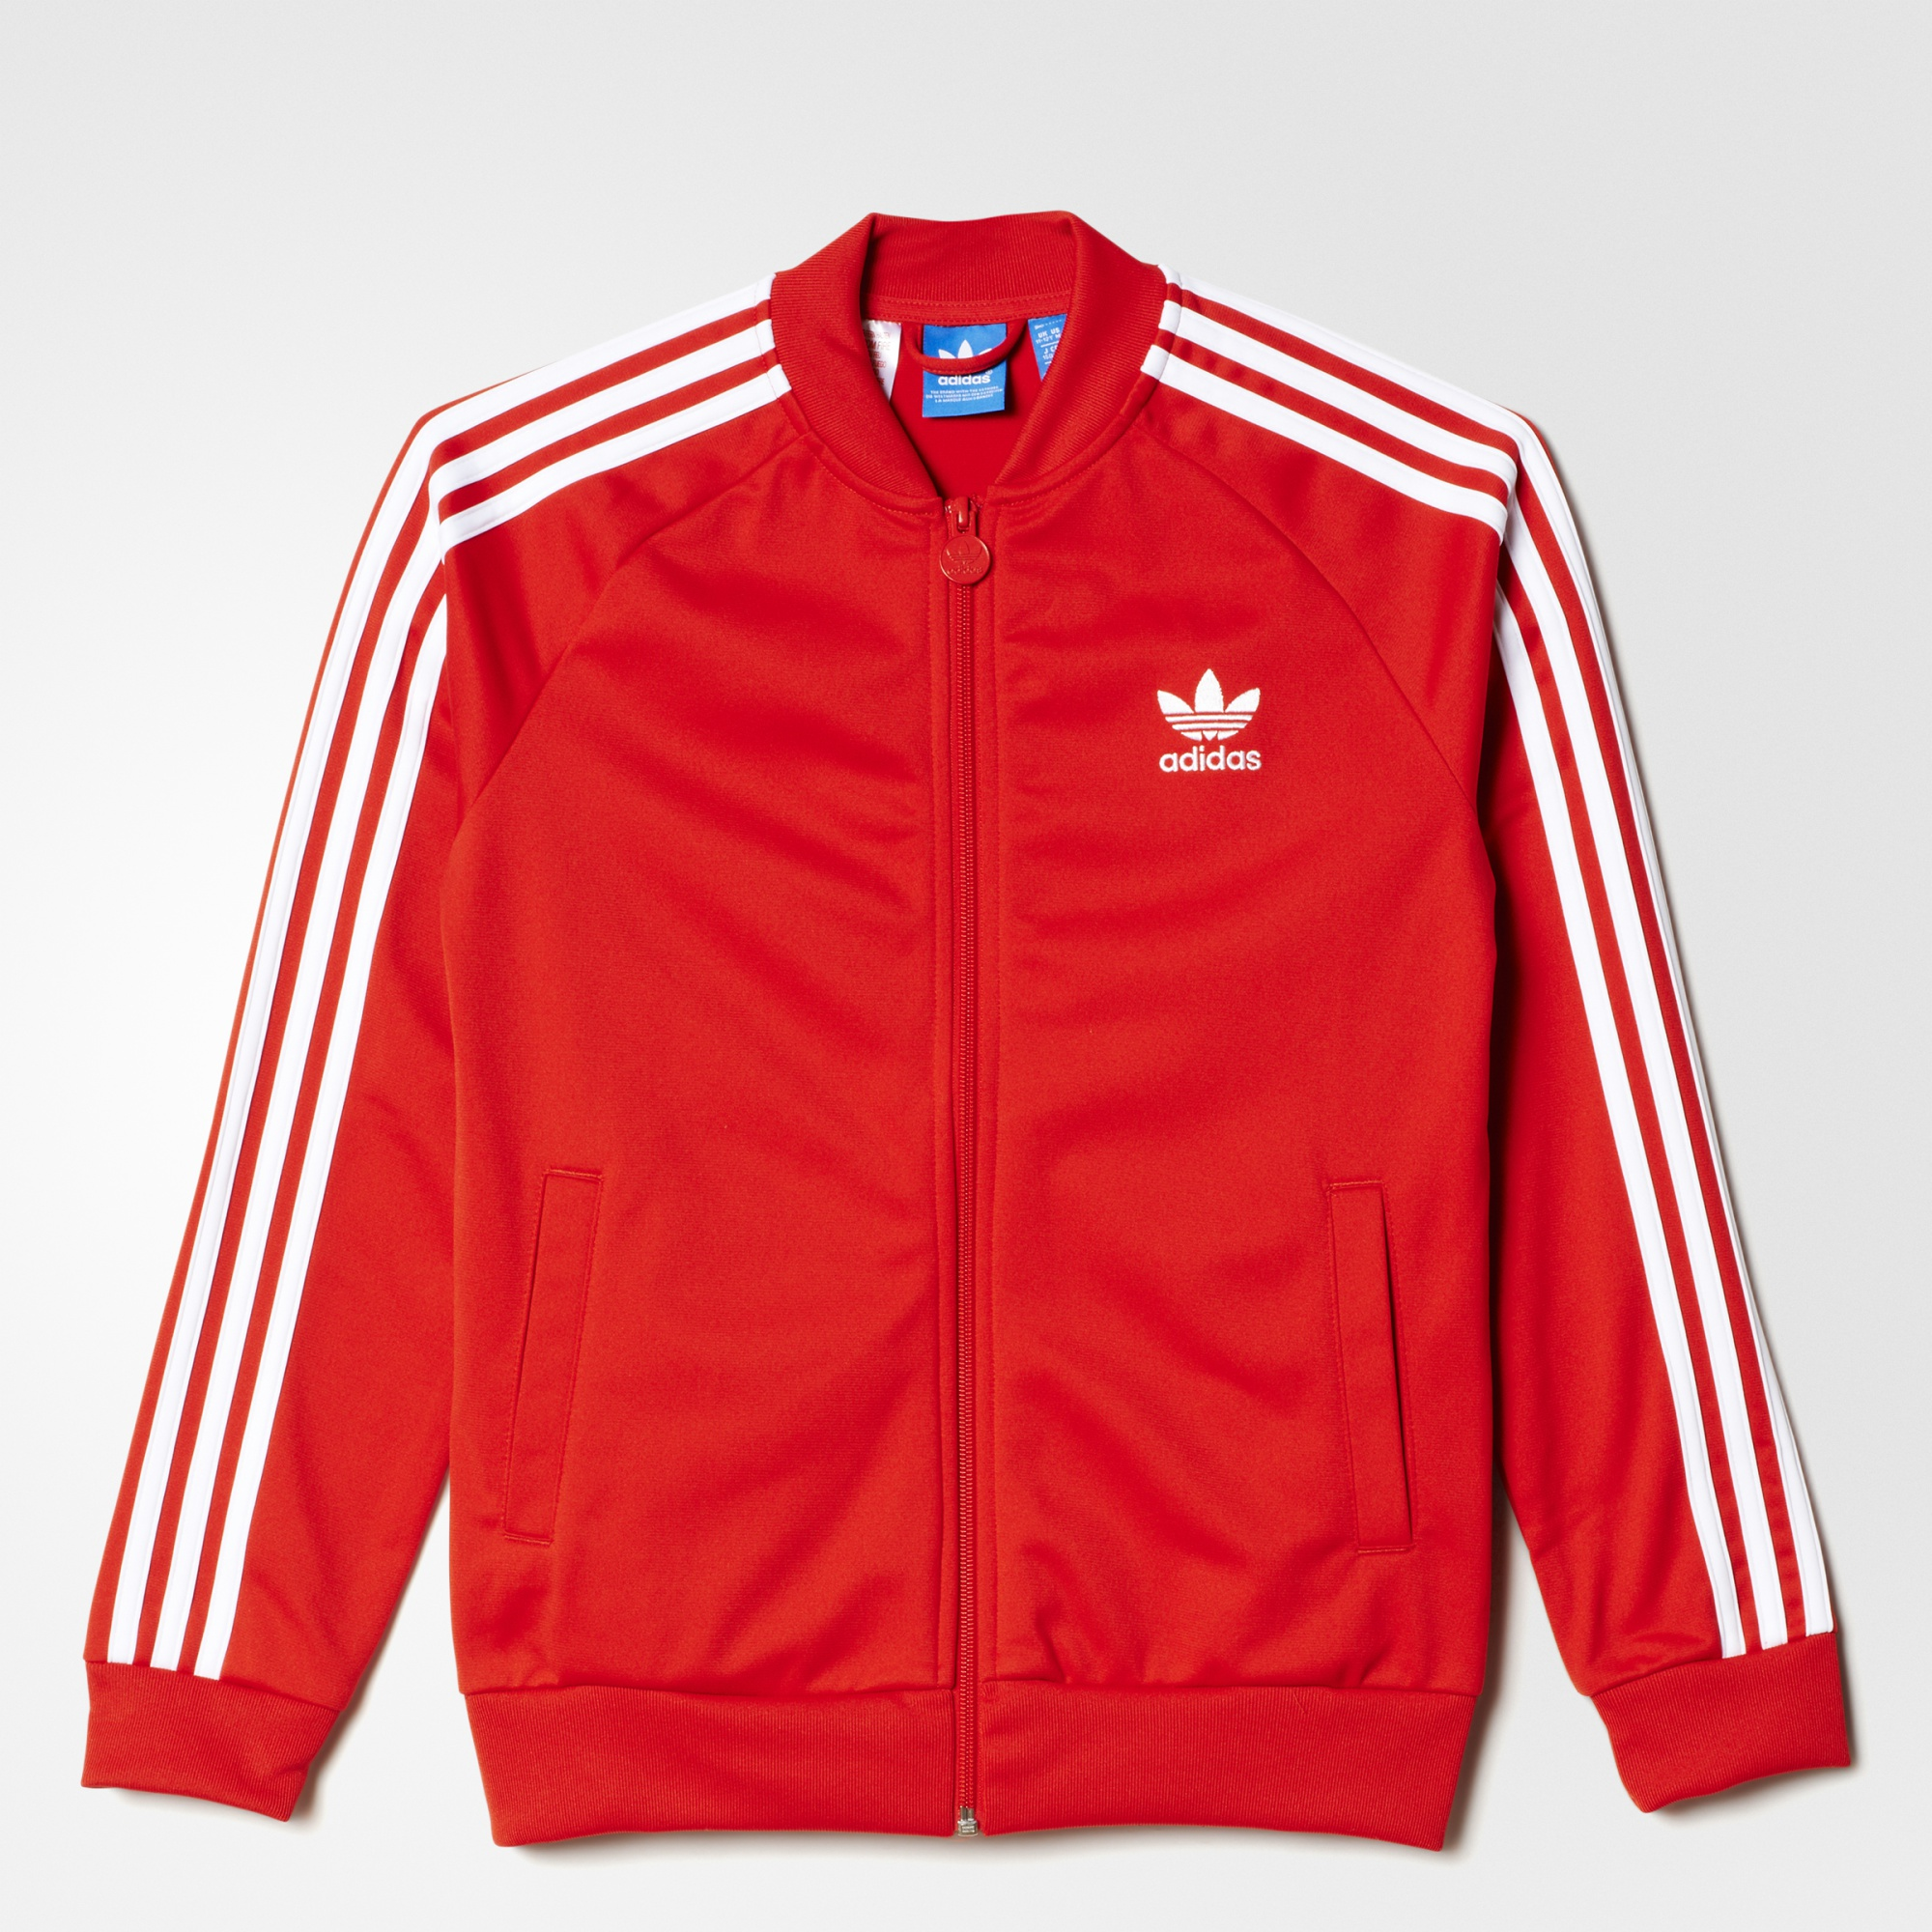 adidas superstar jacket lush red white adidas us. Black Bedroom Furniture Sets. Home Design Ideas